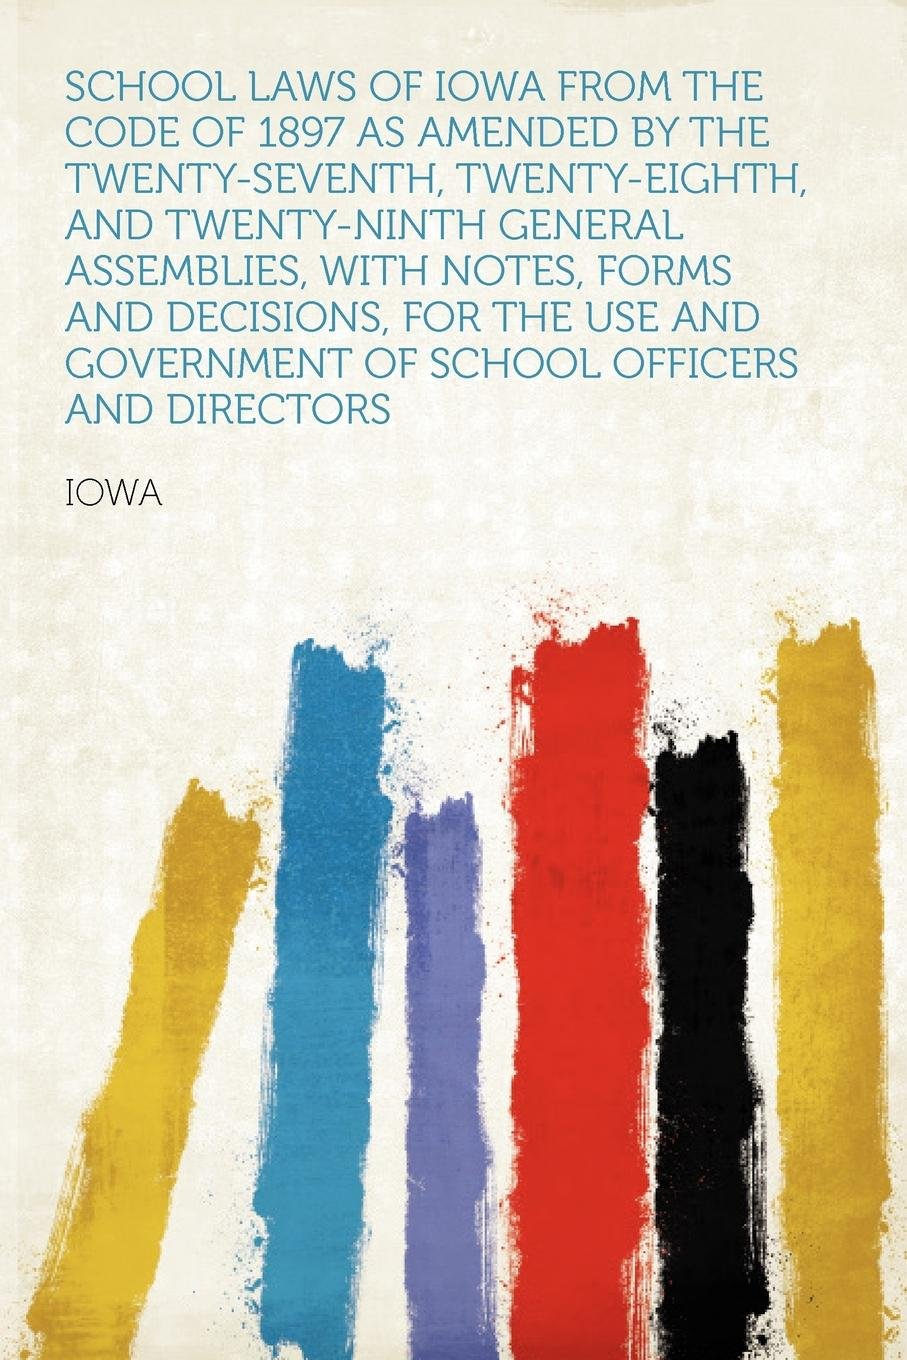 Download School Laws of Iowa From the Code of 1897 as Amended by the Twenty-seventh, Twenty-eighth, and Twenty-ninth General Assemblies, With Notes, Forms and Government of School Officers and Directors ebook